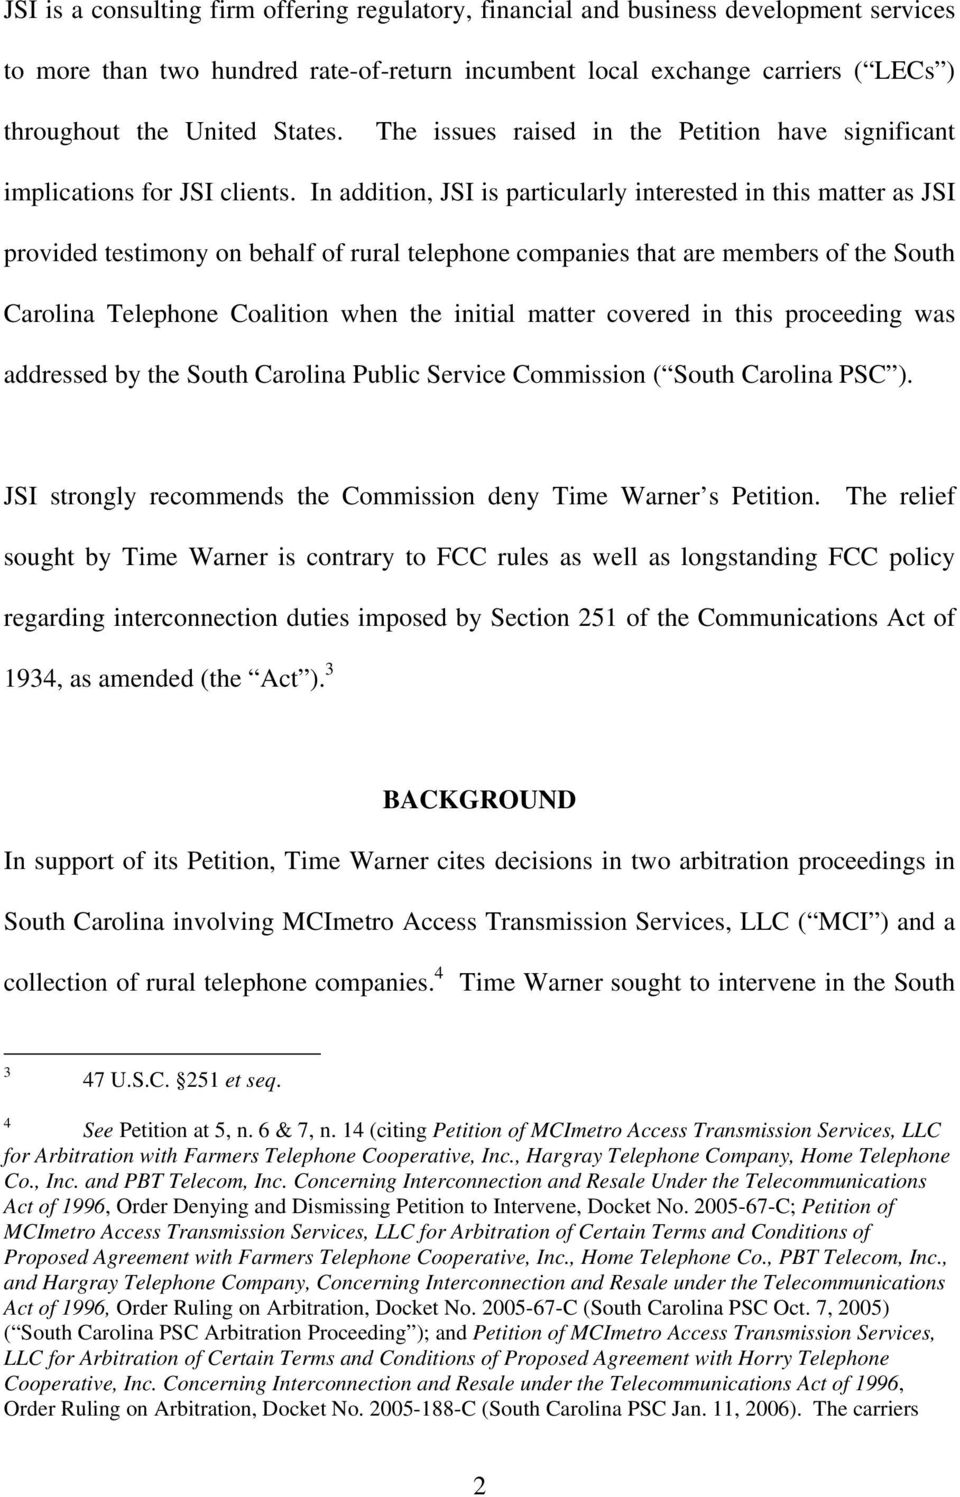 In addition, JSI is particularly interested in this matter as JSI provided testimony on behalf of rural telephone companies that are members of the South Carolina Telephone Coalition when the initial